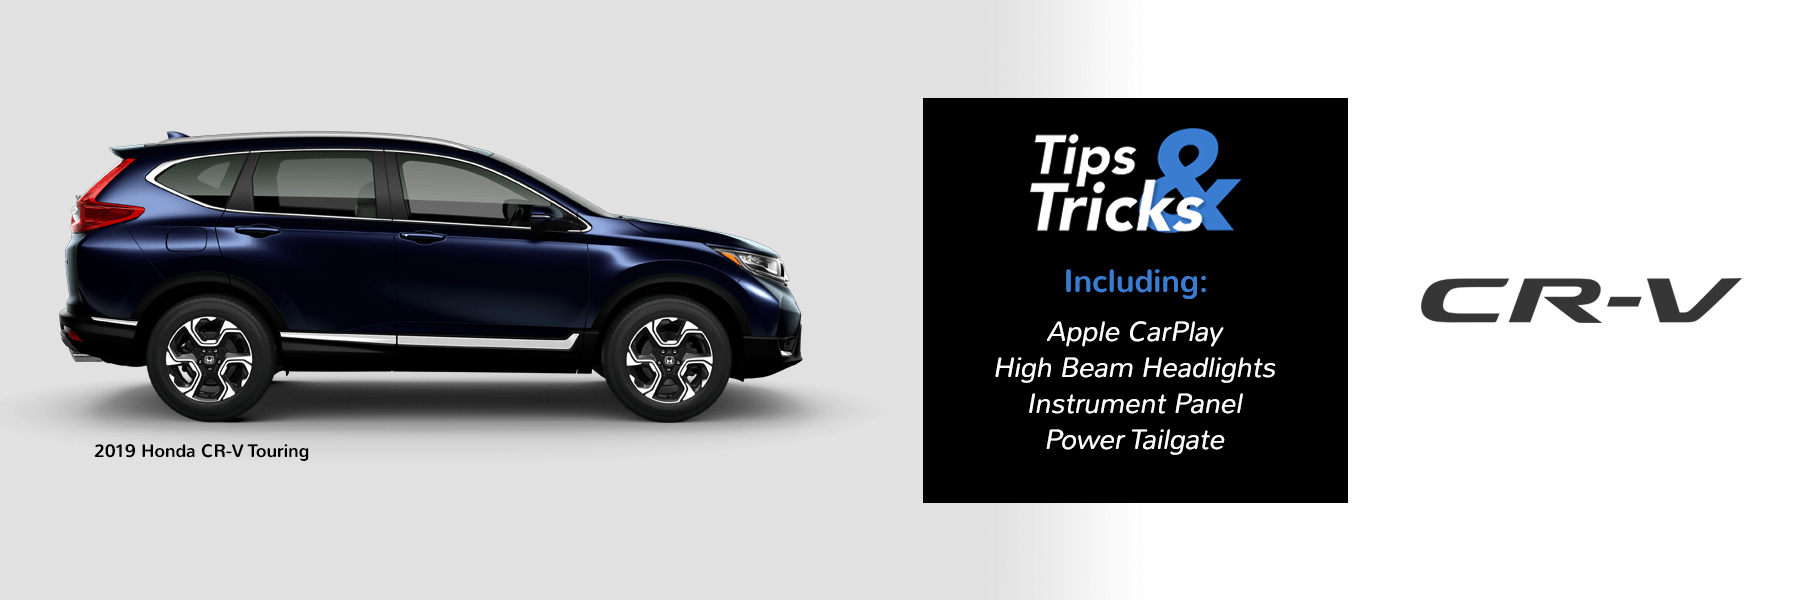 Honda Tips and Tricks 2019 CR-V Slider